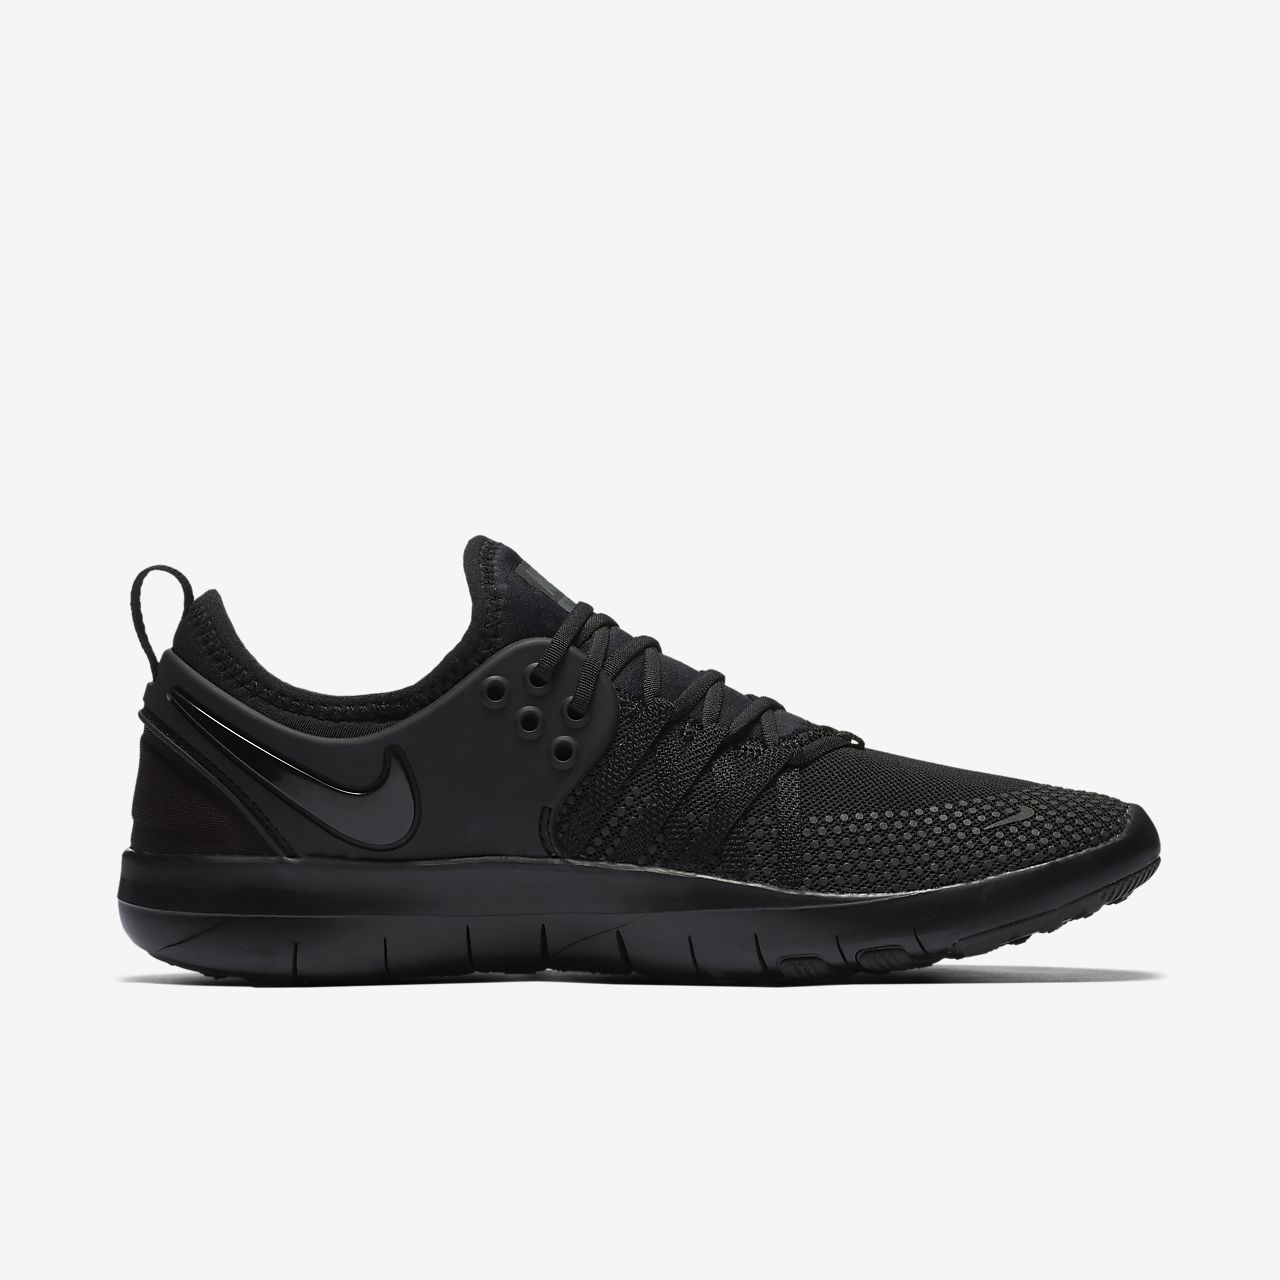 Store Nike Free 5 0 Classic Black White Original Nike Free Run Shoes KPC1o Km L